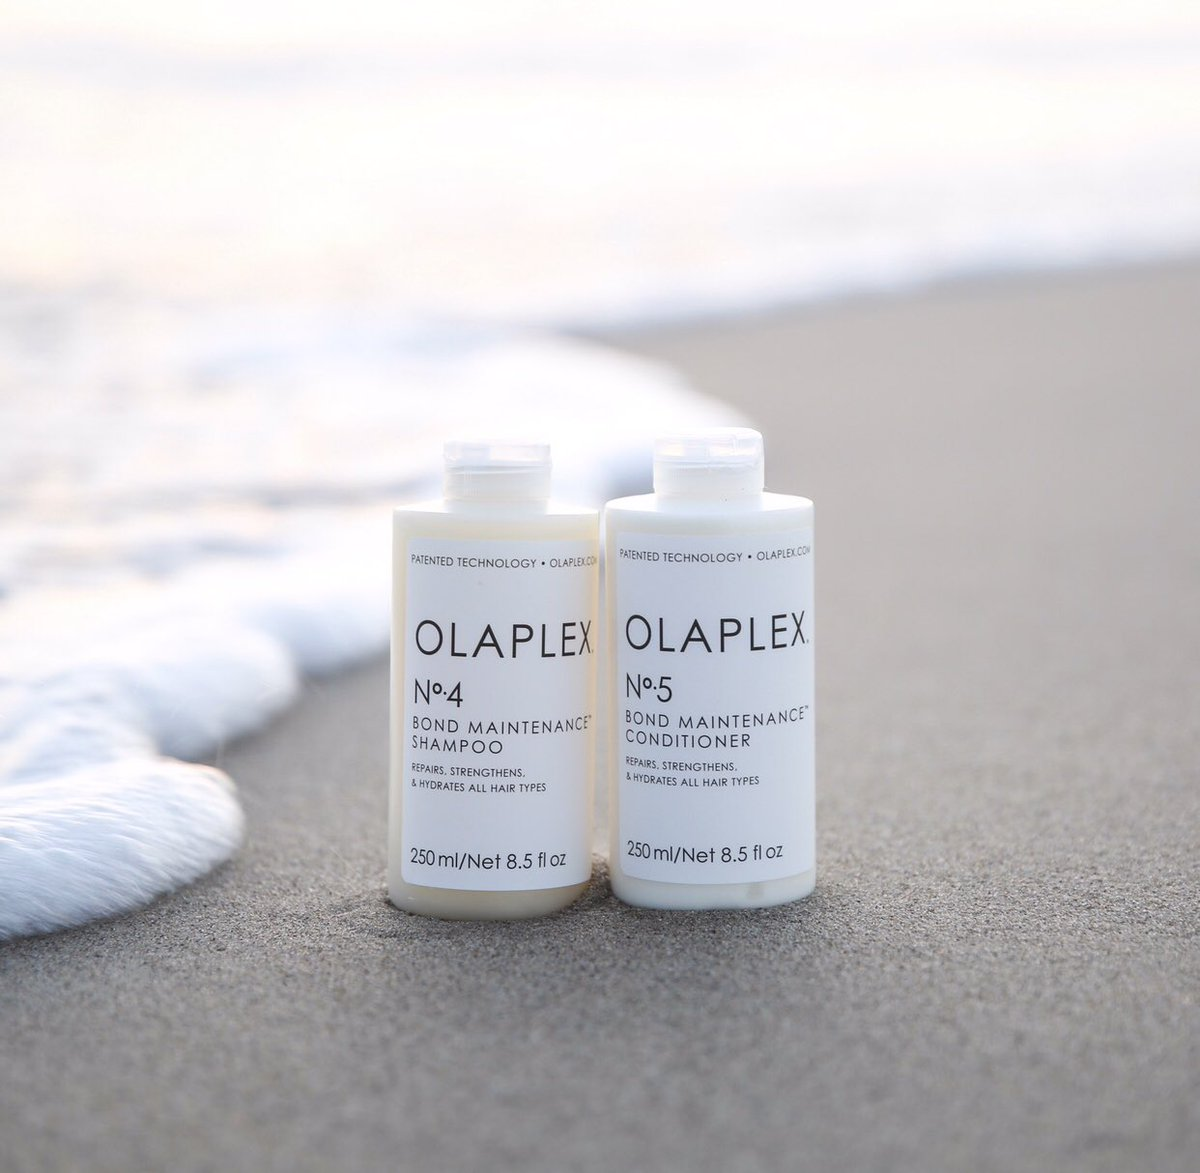 Olaplex No 5 Bond Maintenance Shampoo